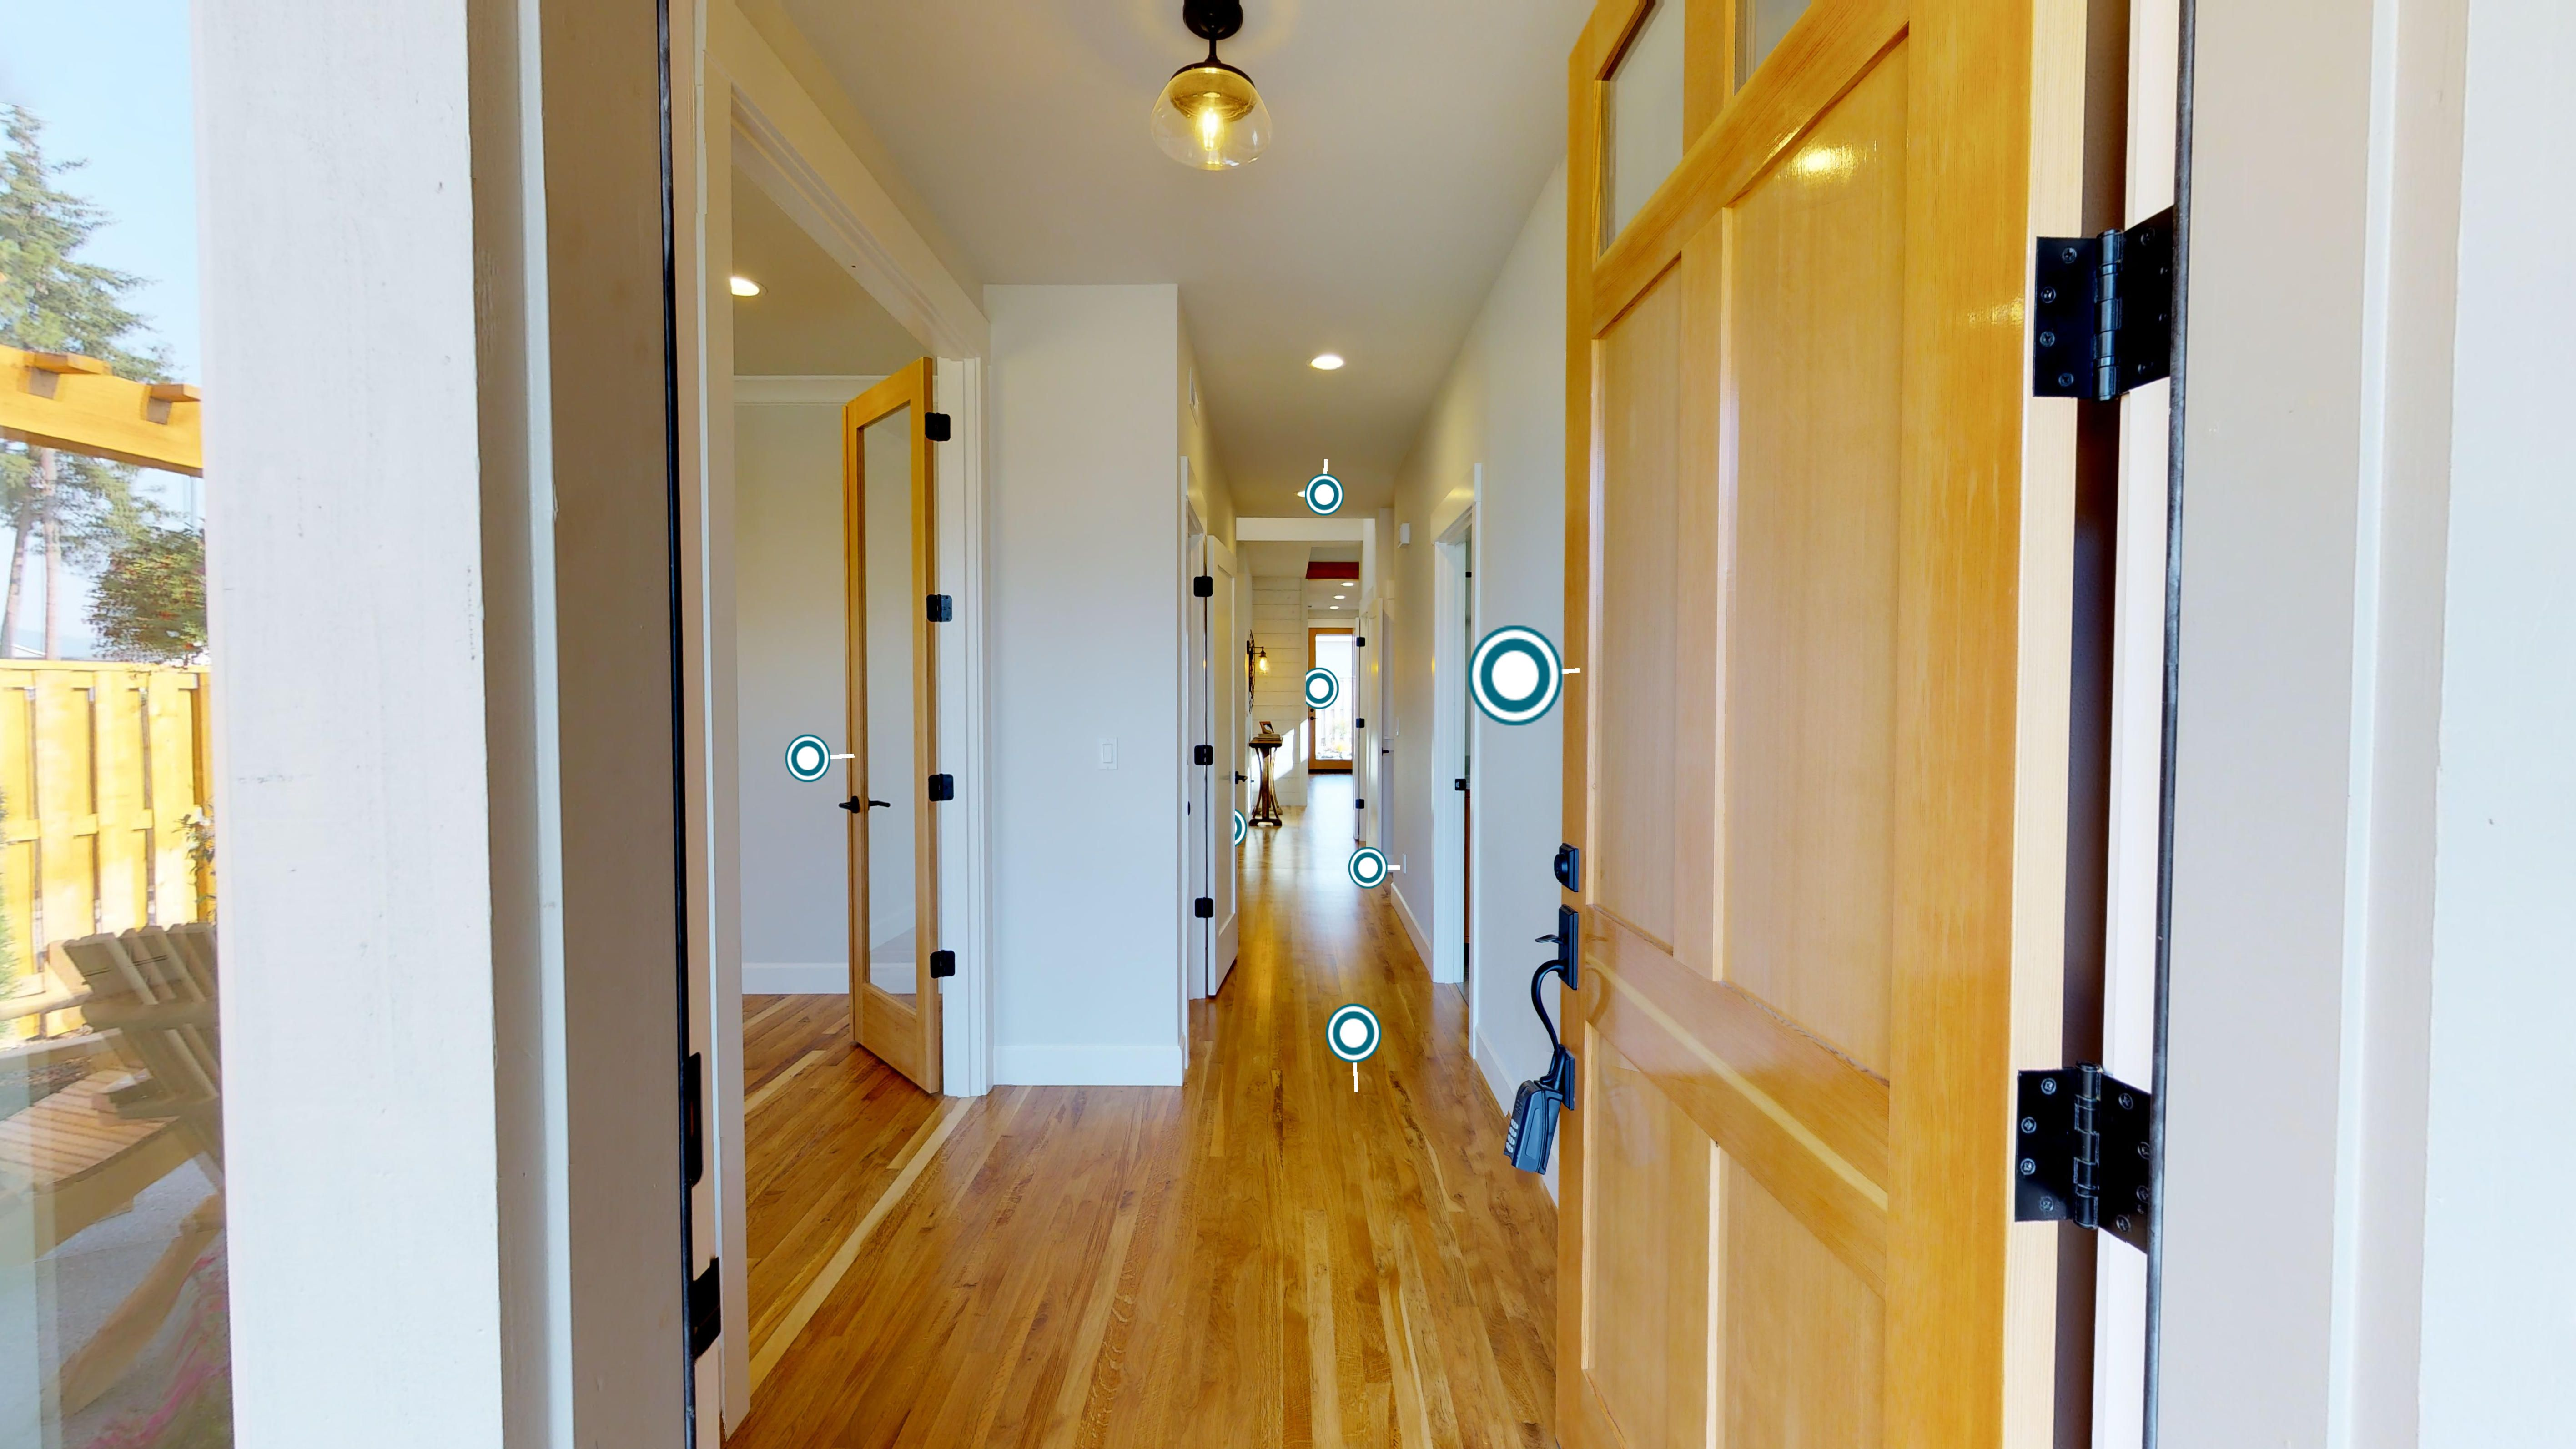 Built by Forest Grove High School this 2,139 Sq. ft. home